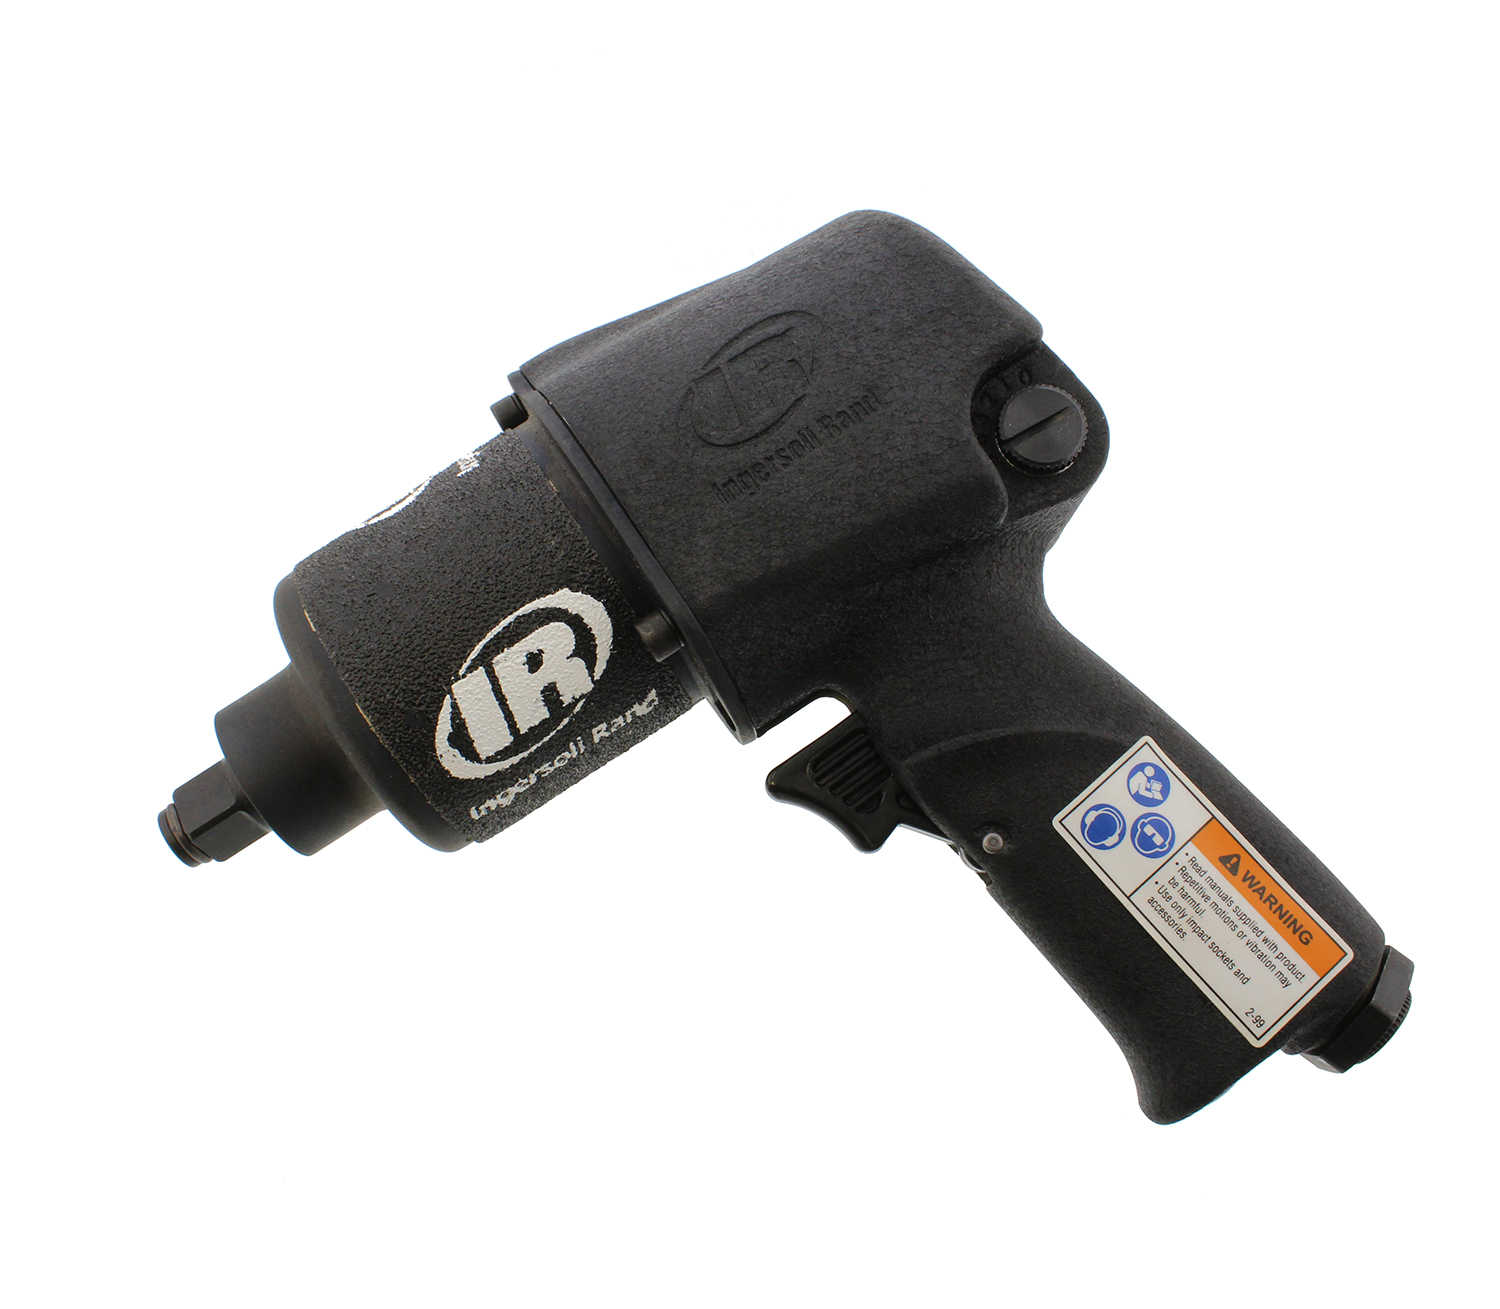 Ingersoll-Rand 1/2-Inch Super-Duty Air Impact Wrench Thunder Gun 232TGSL